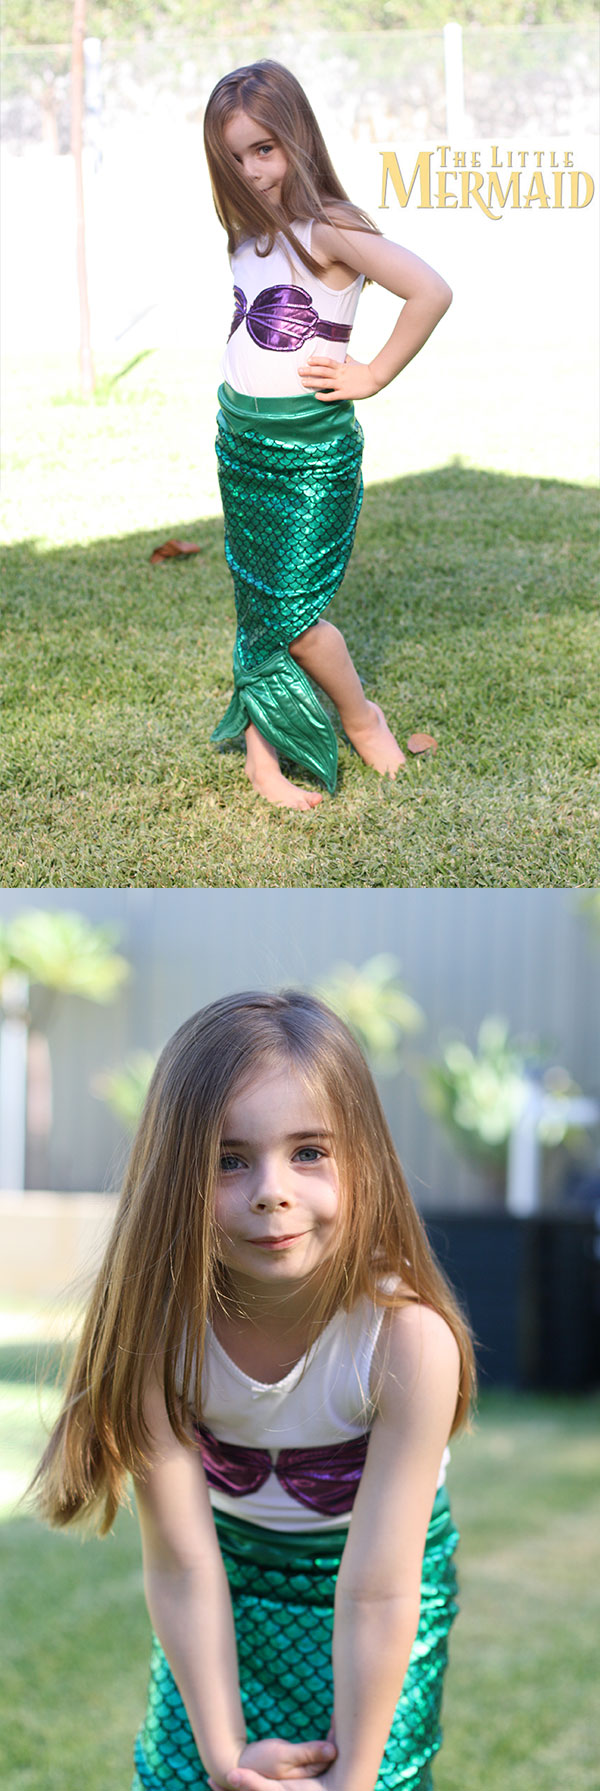 Megan Nielsen Design Diary // The Little Mermaid Costume